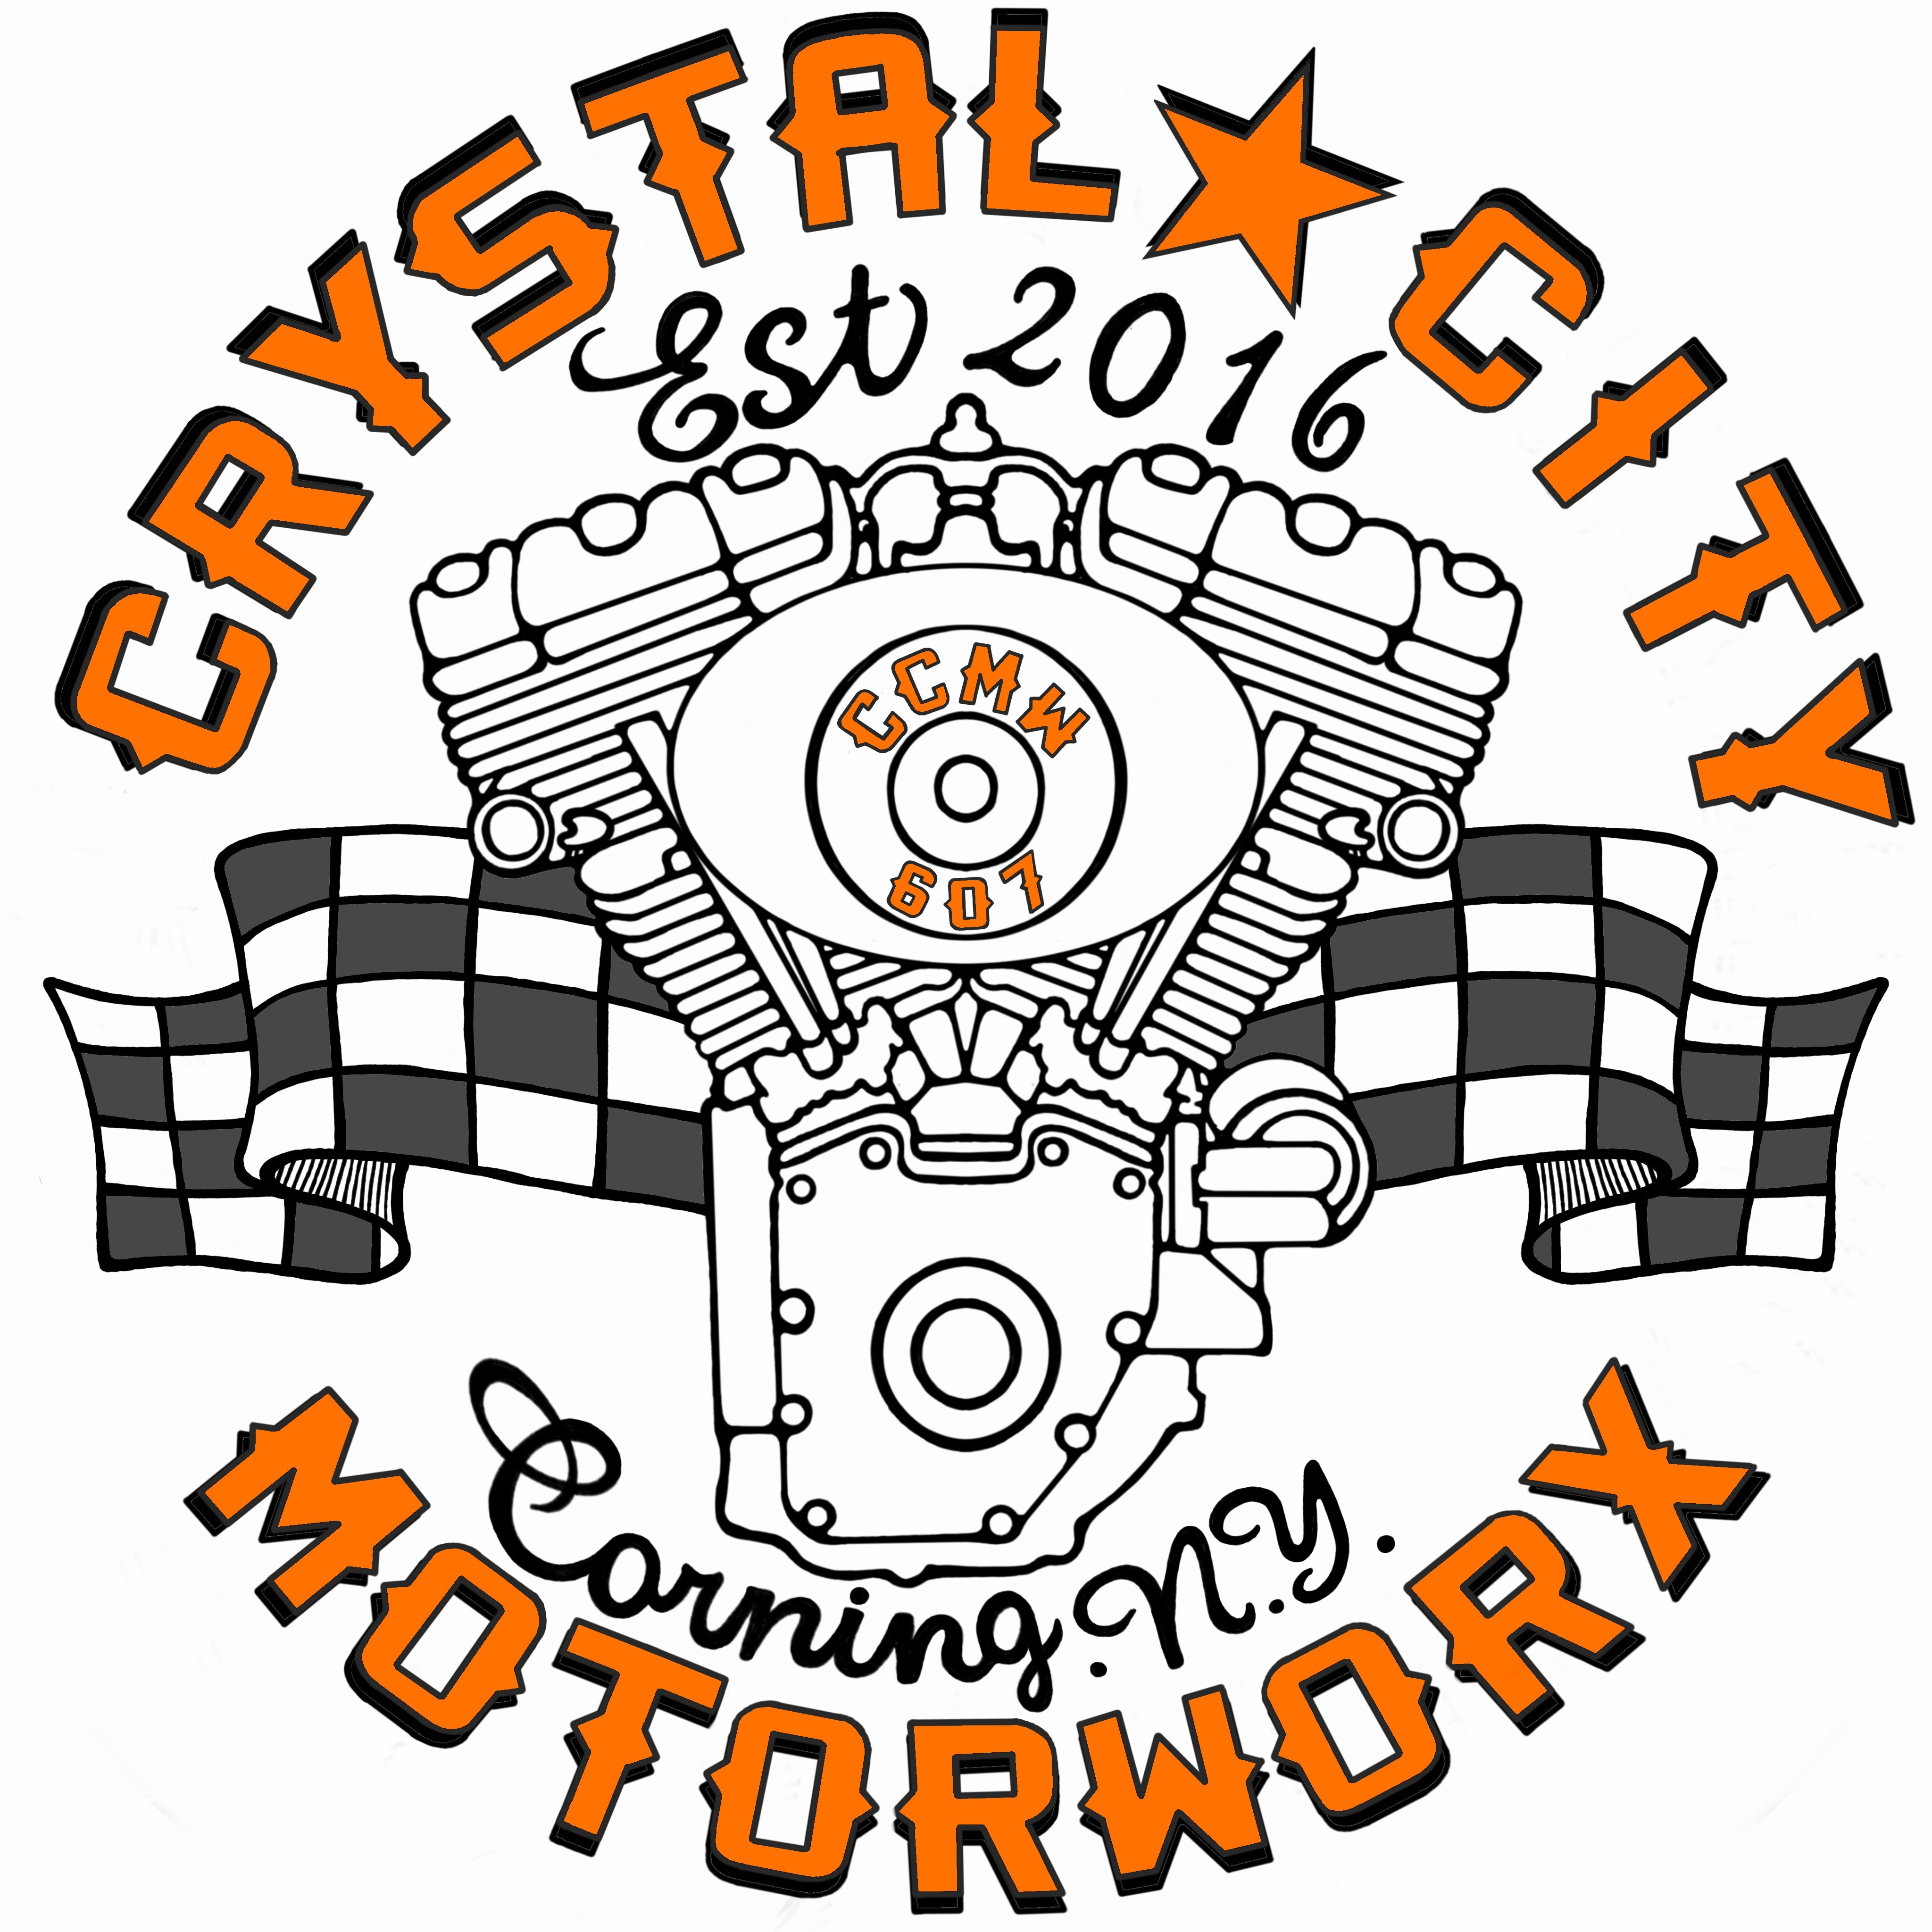 CRYSYAL CITY MOTORWORX